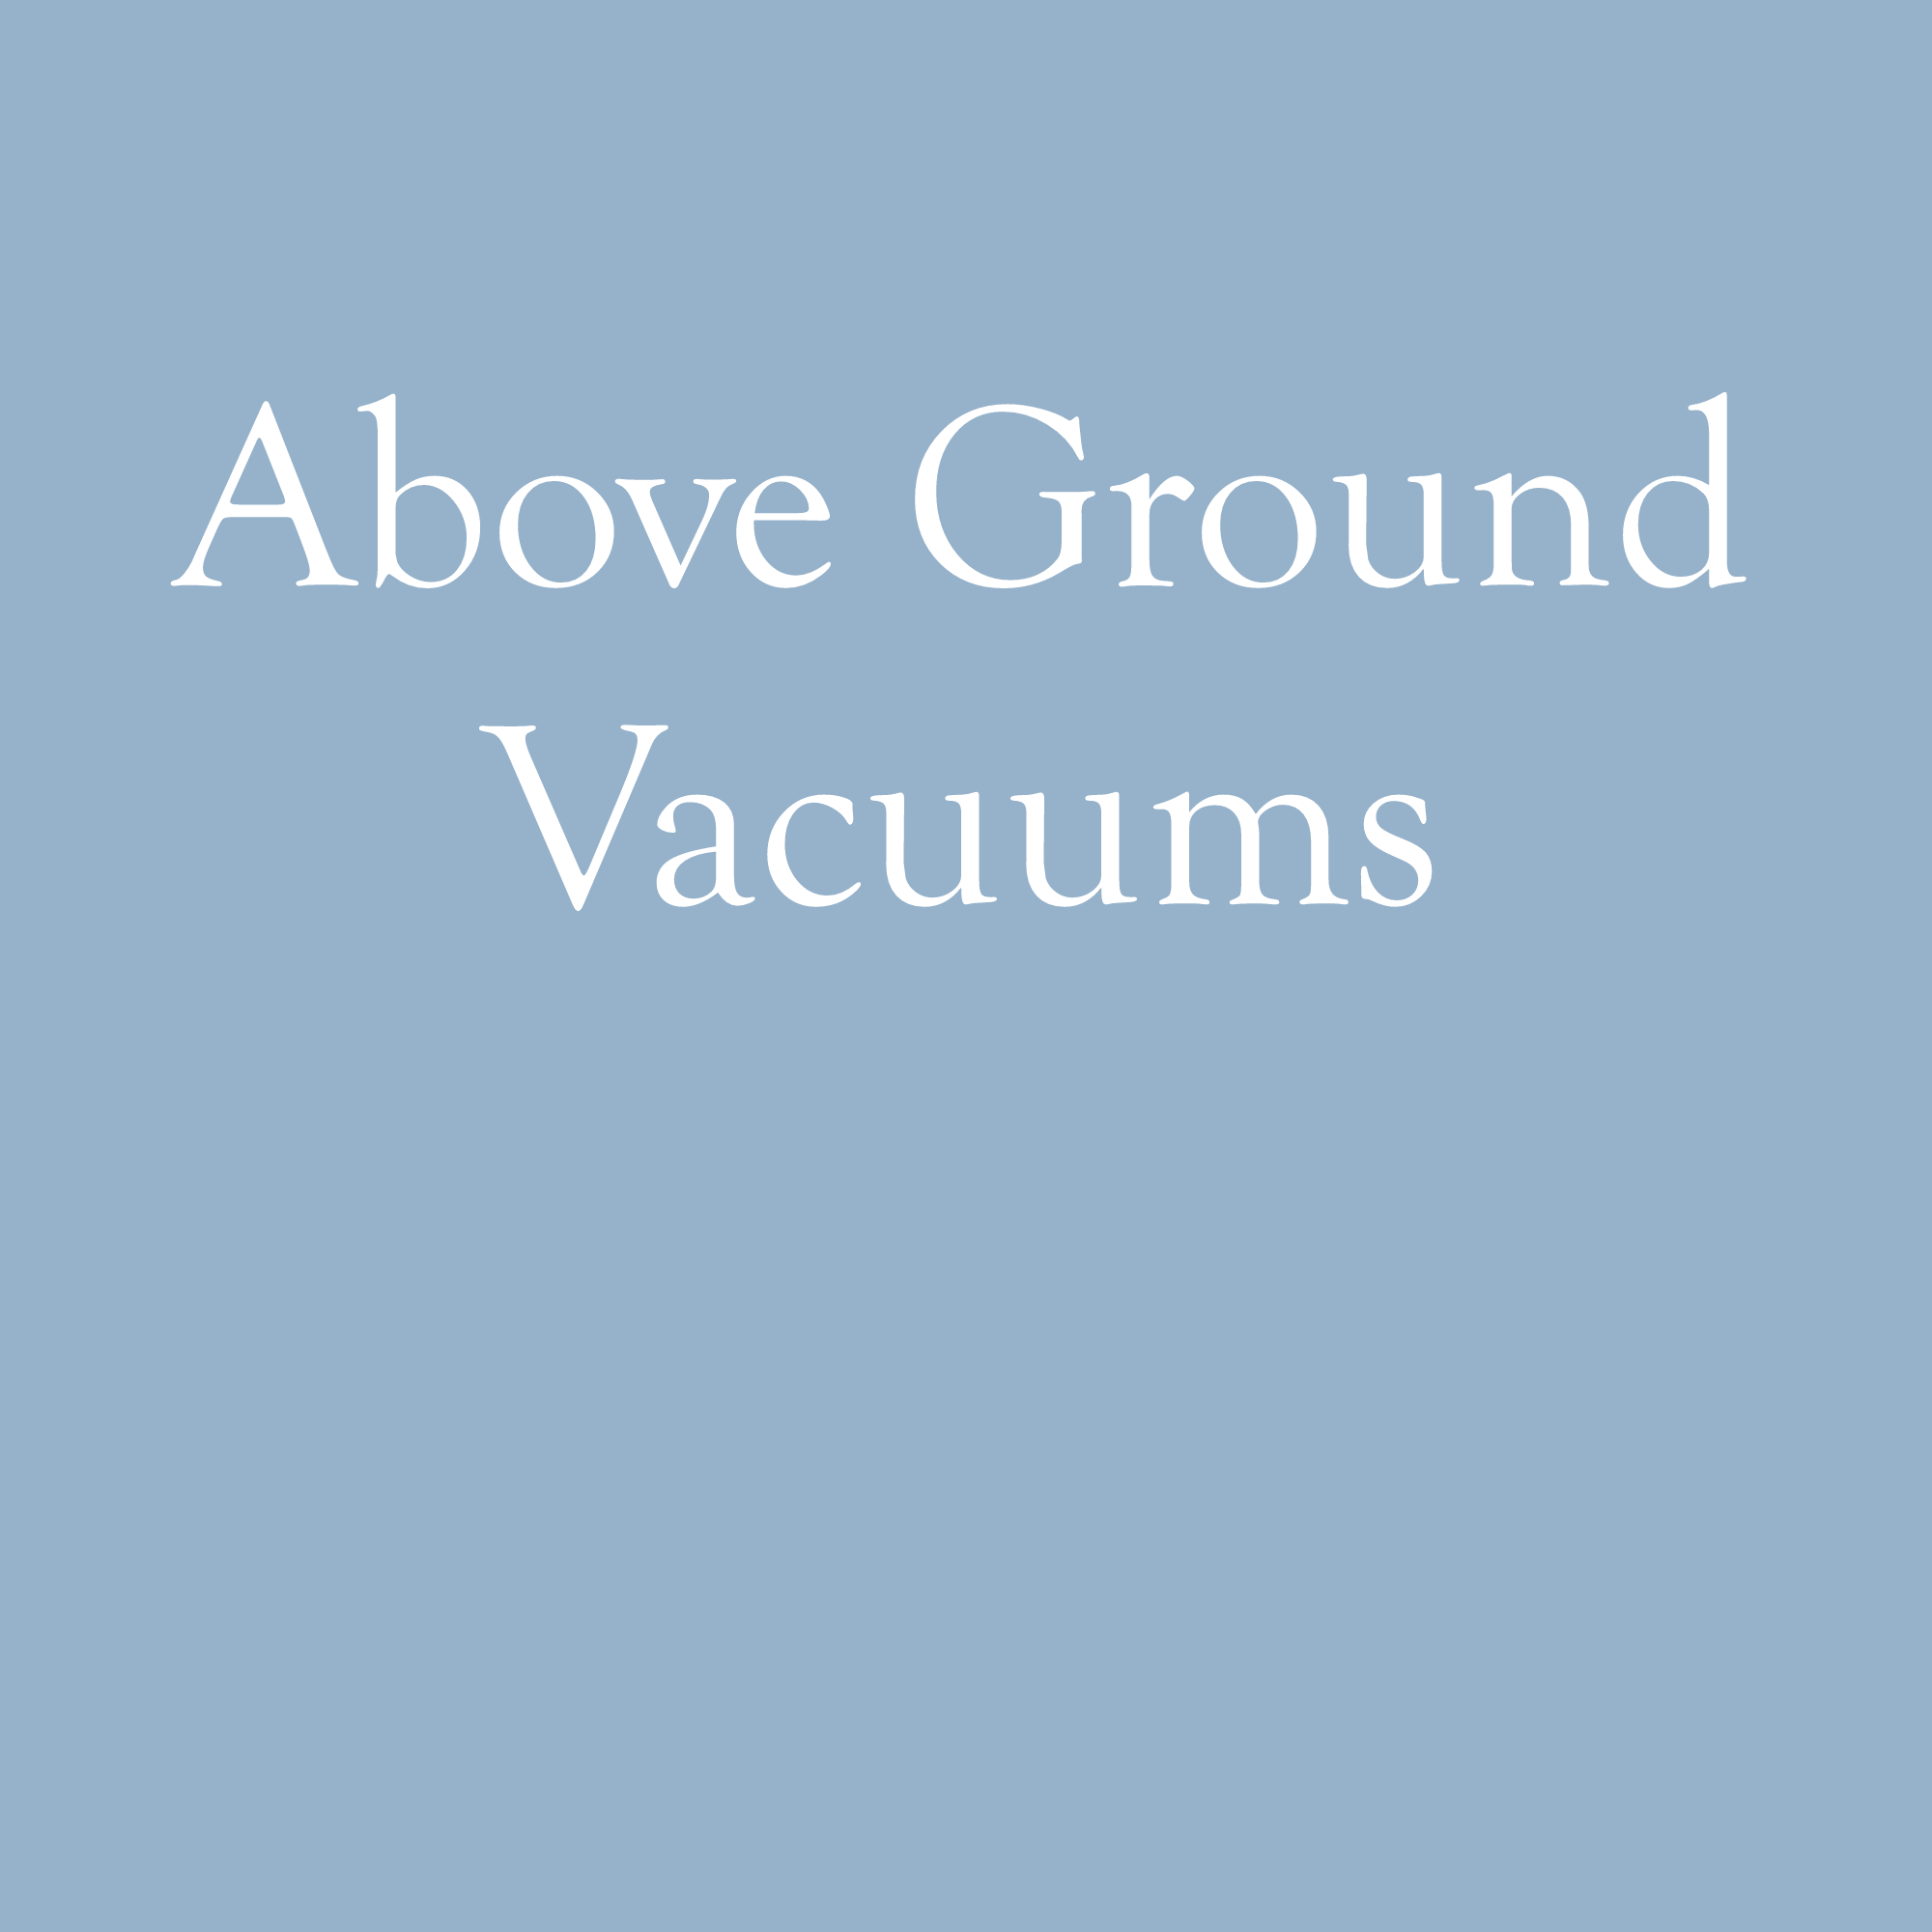 Above Ground Vacuums